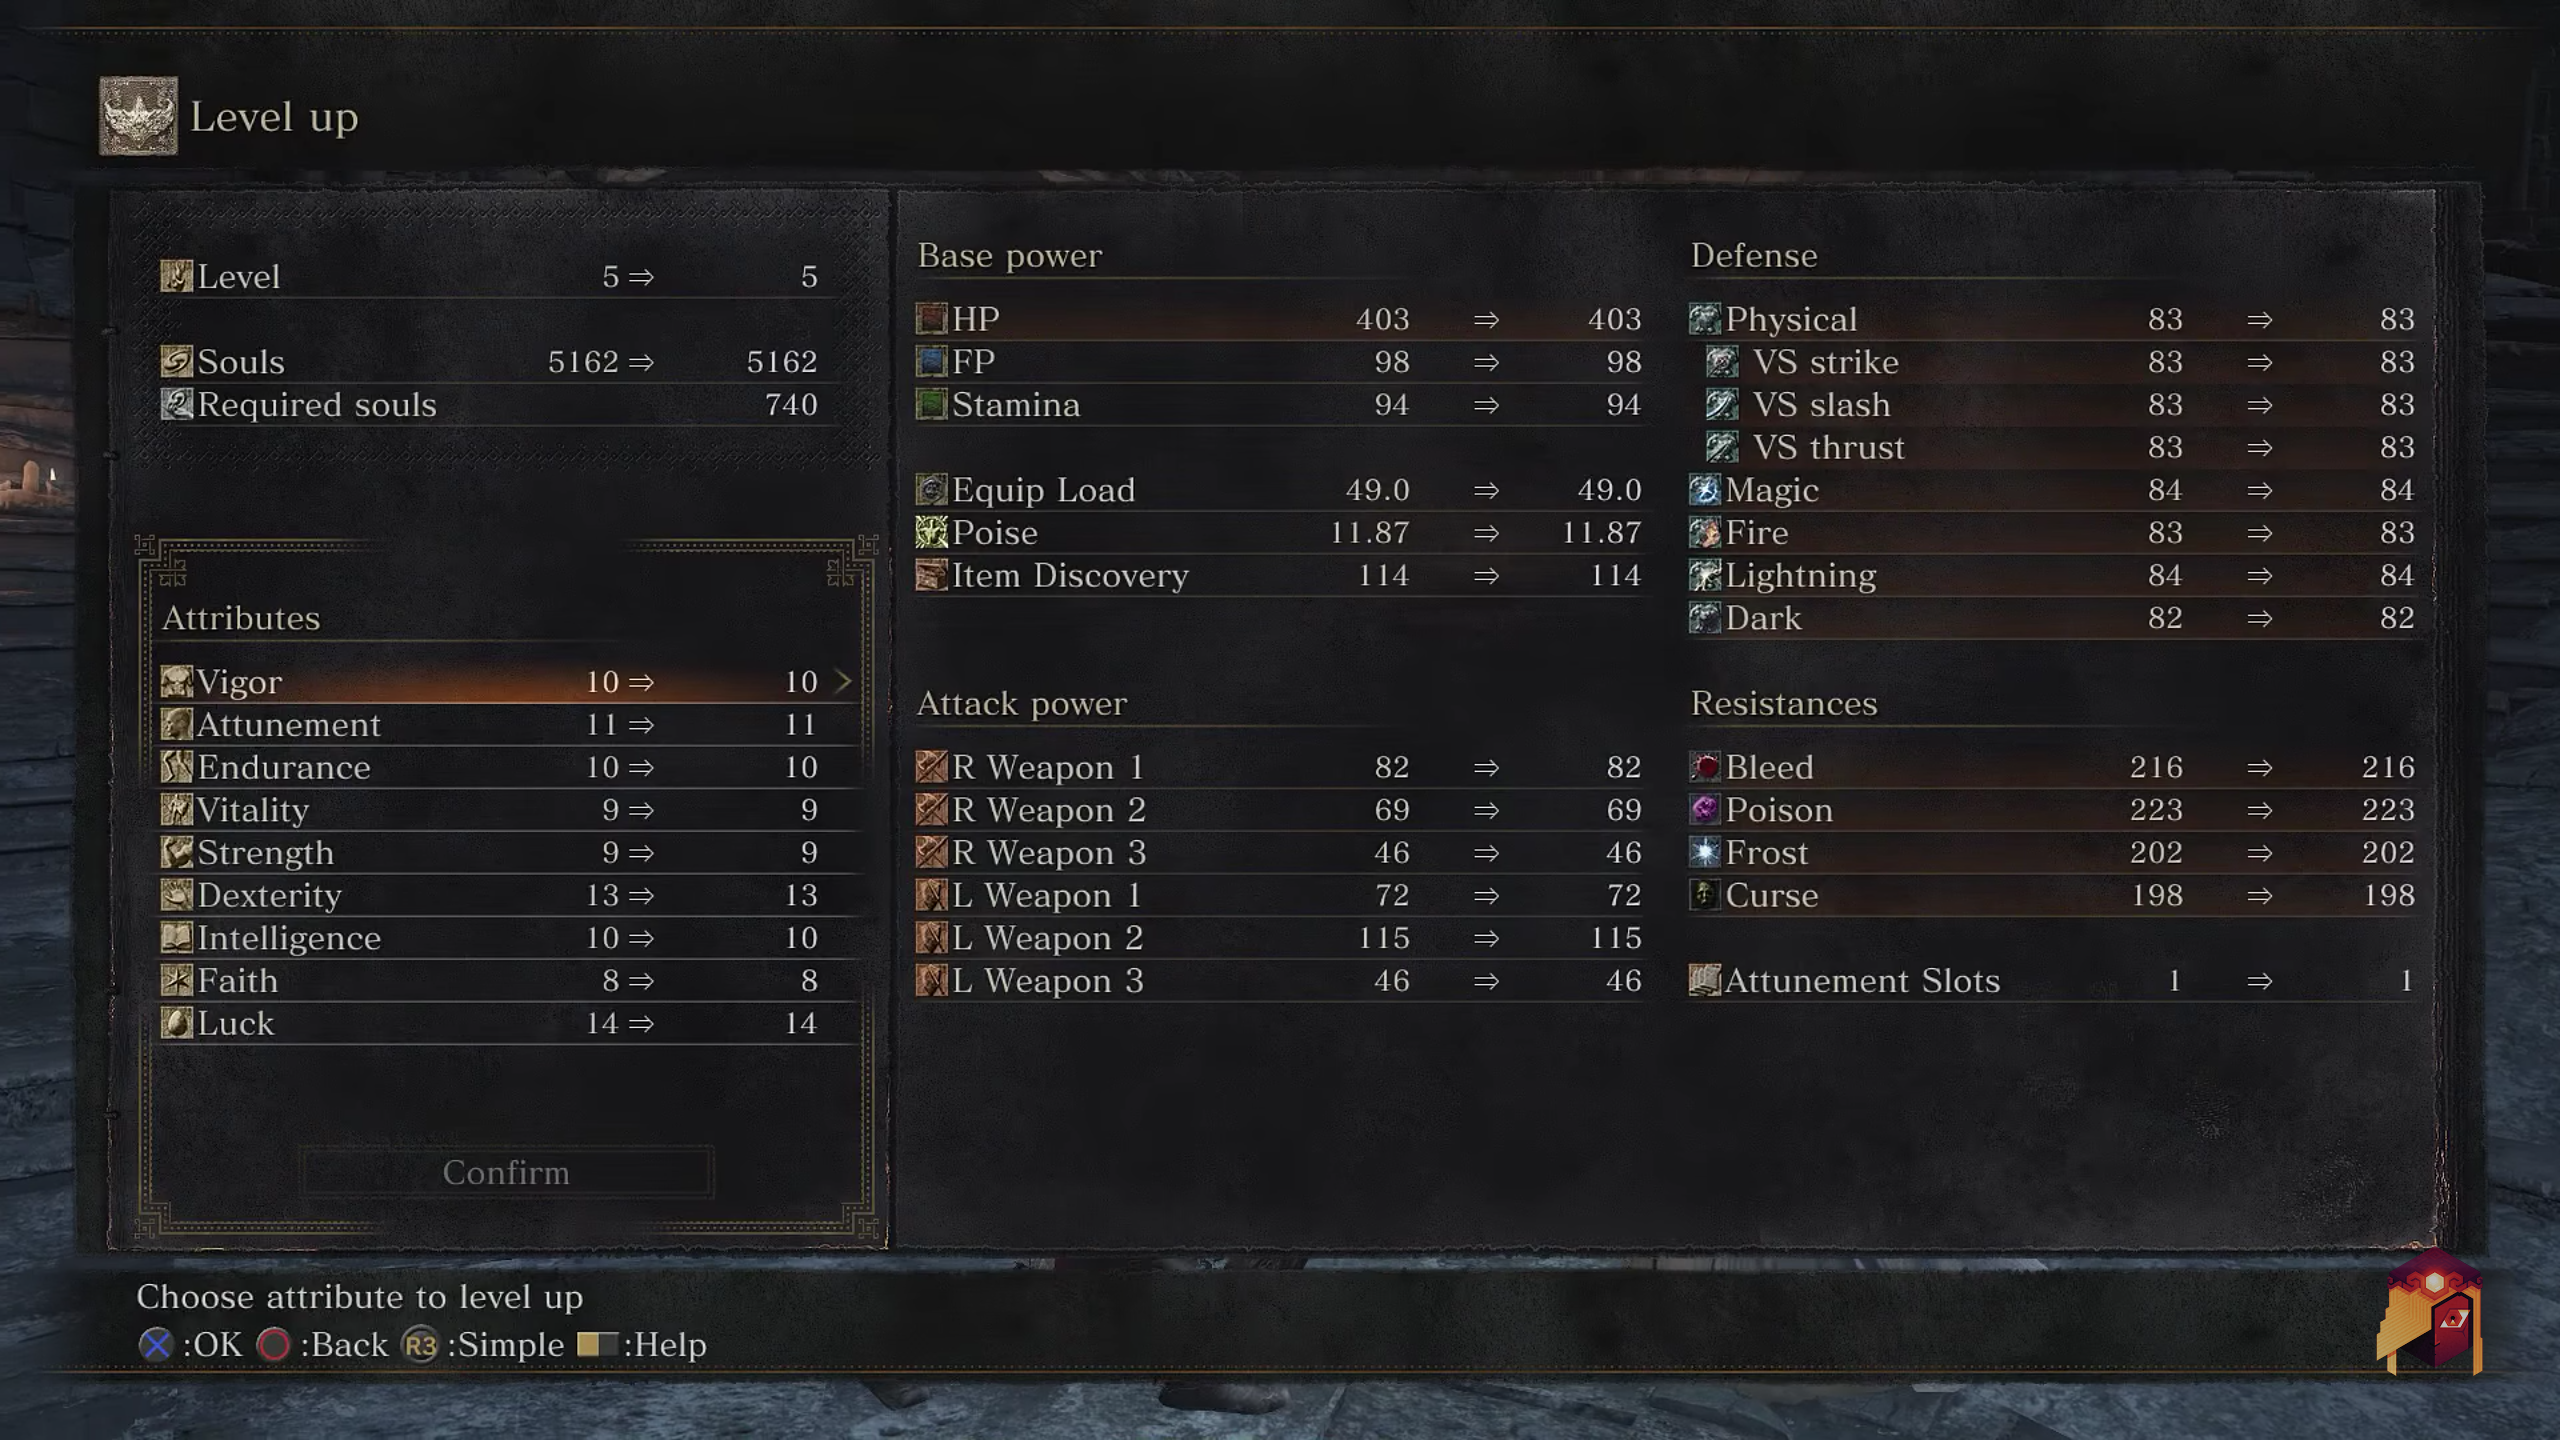 Top 10 Things We've Learned About Dark Souls 3 From Early Access